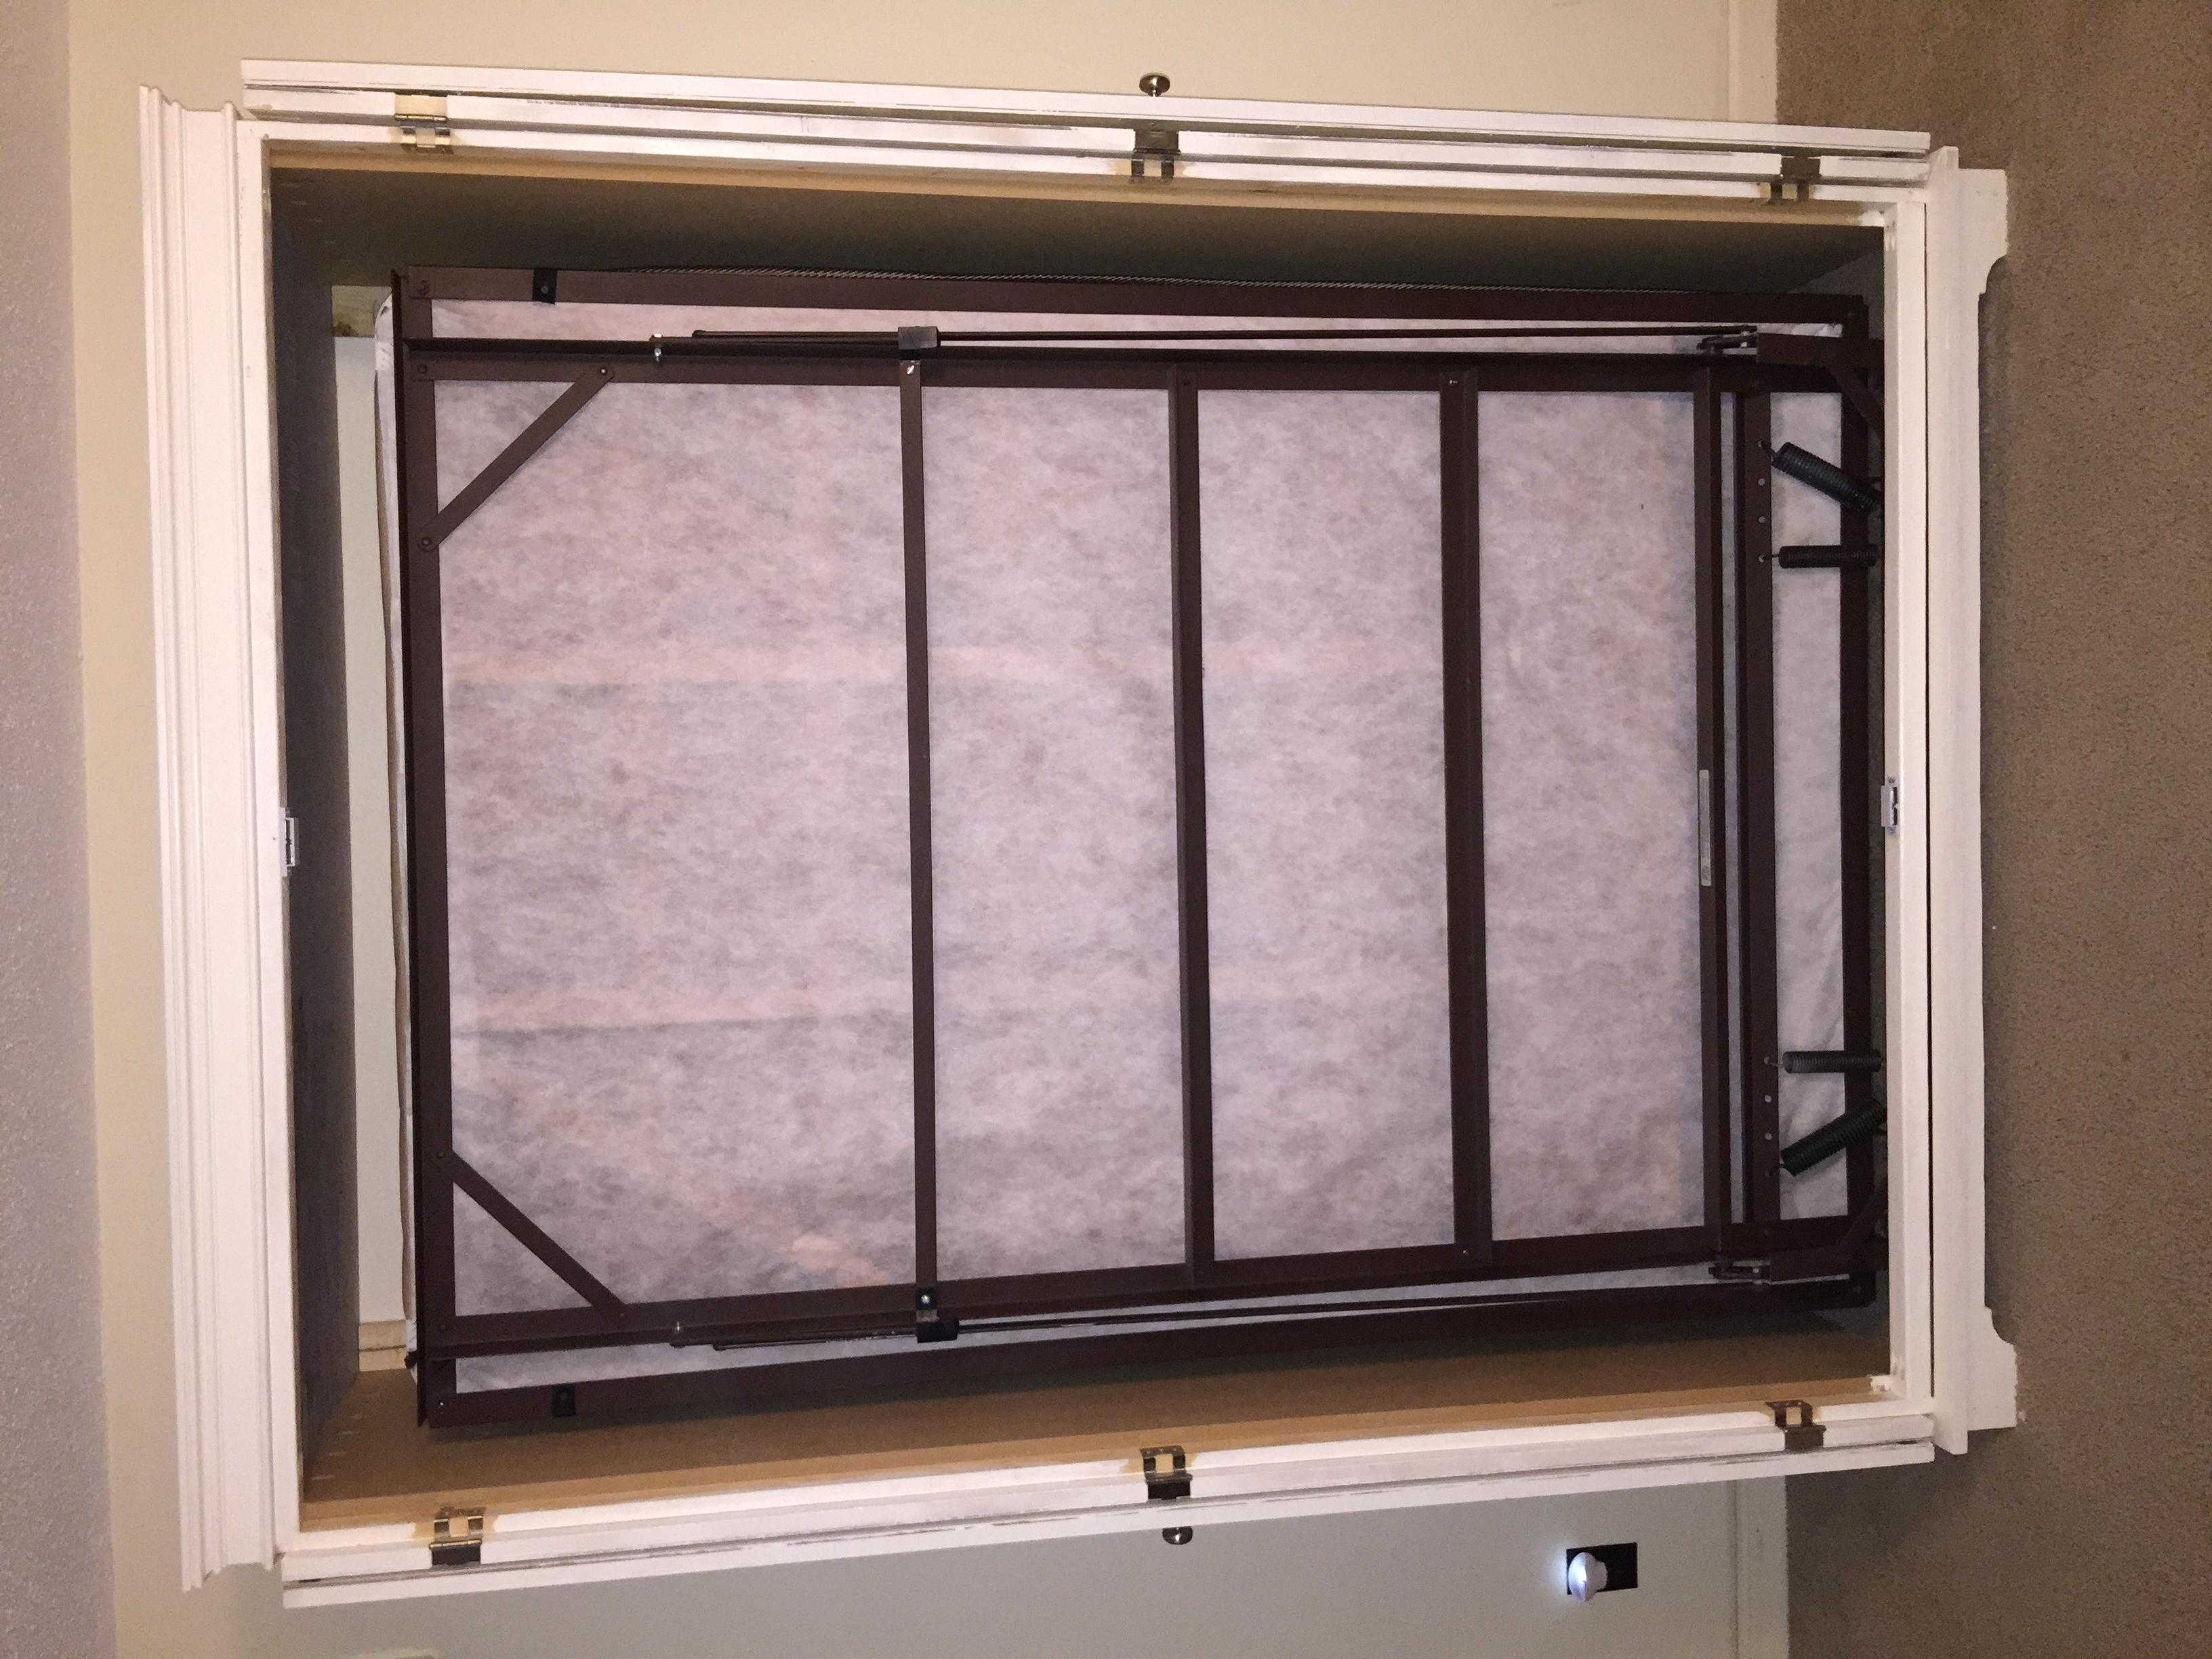 Ana White Murphy Bed Cabinet DIY Projects